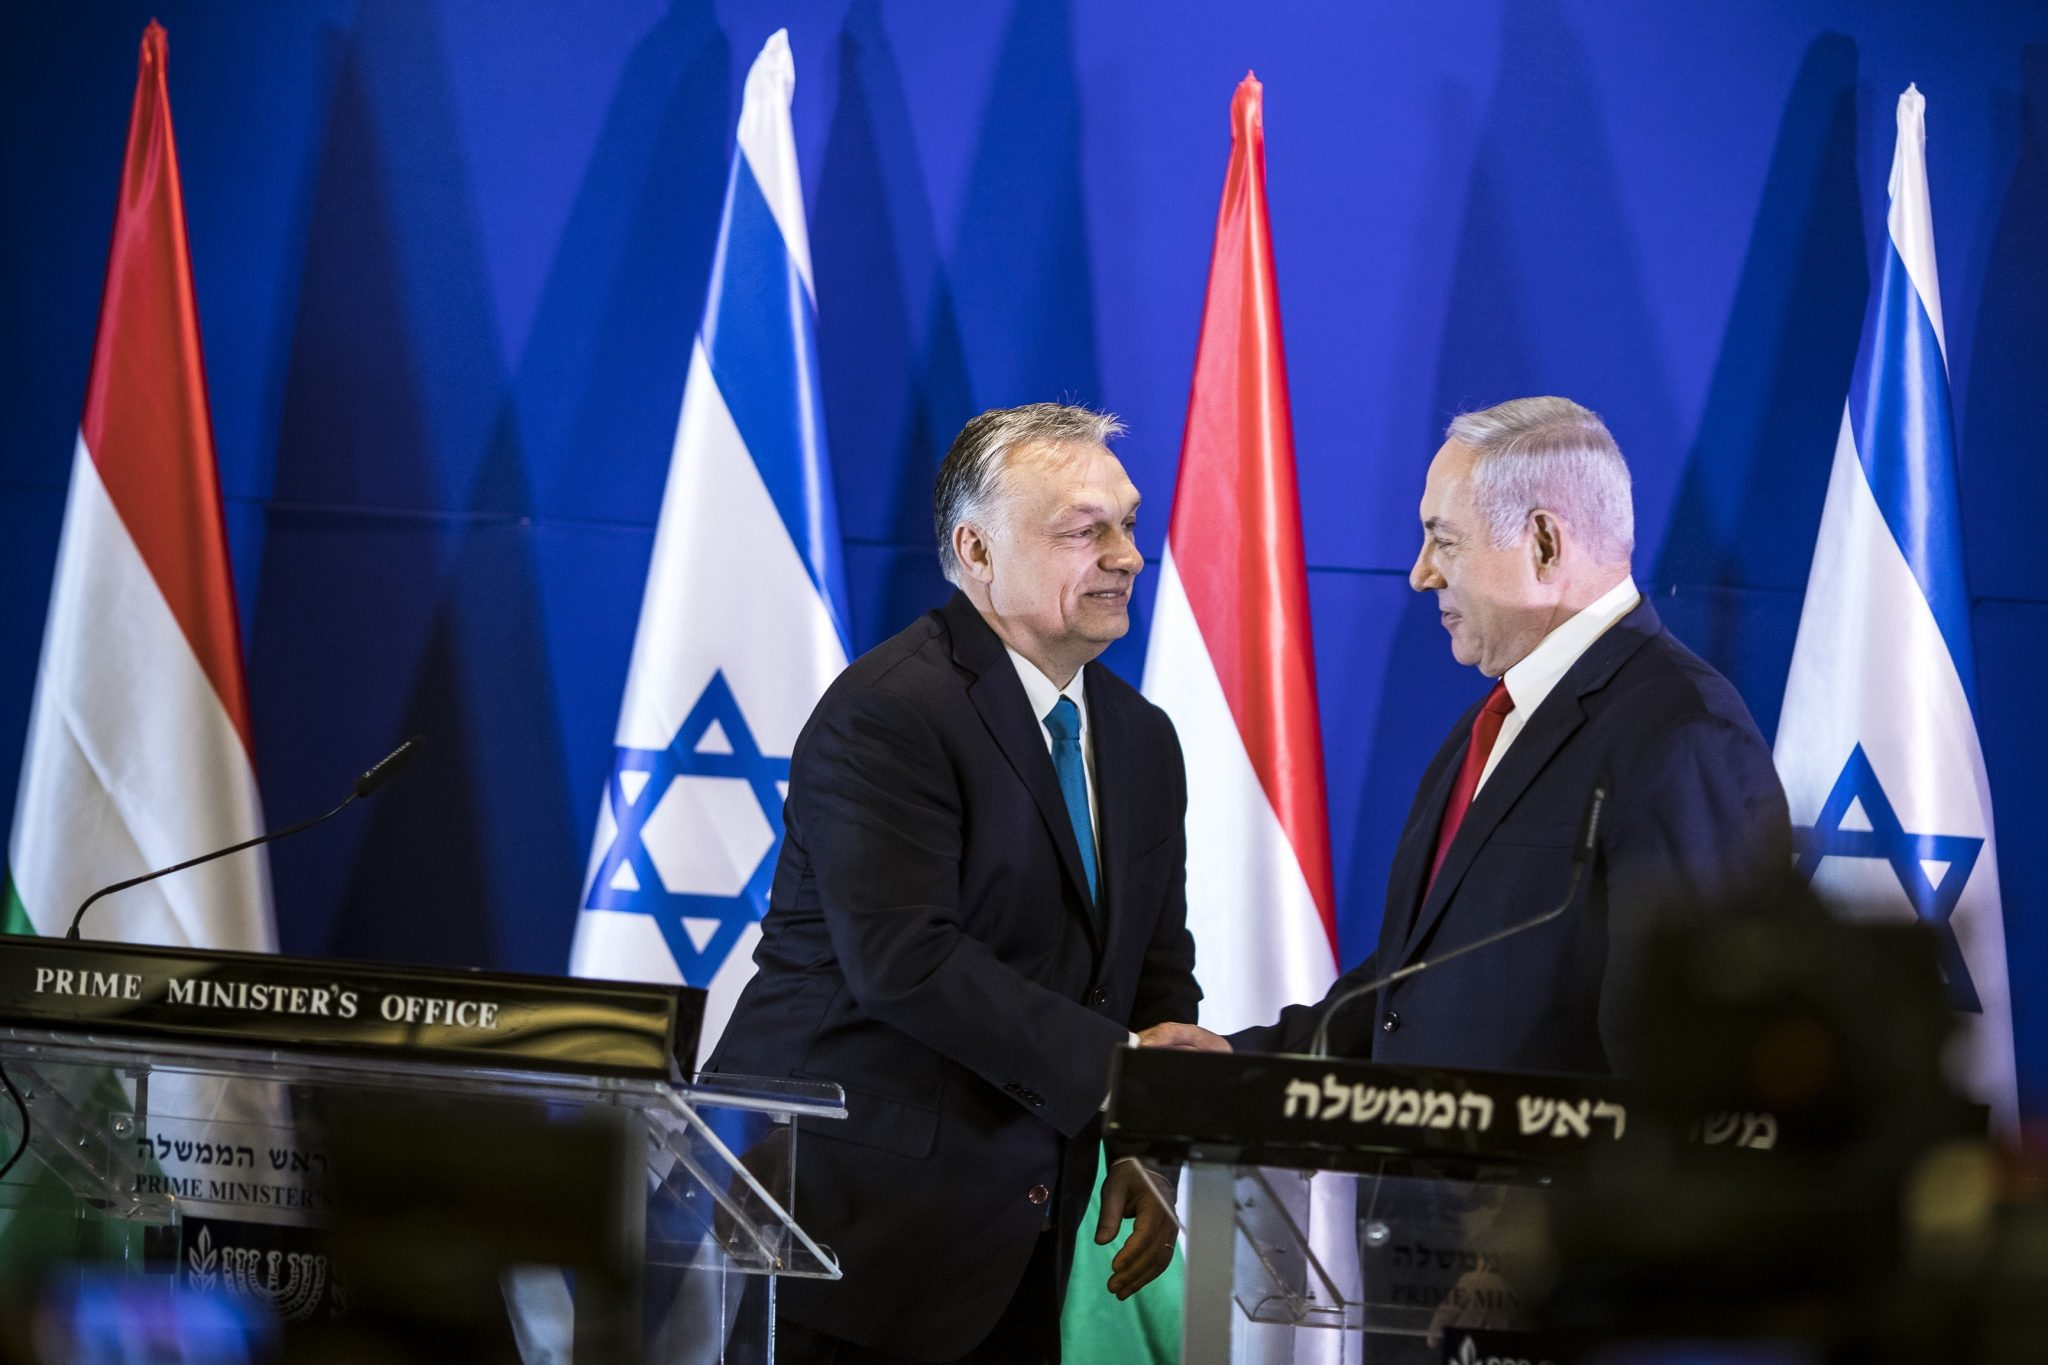 Hungary Does Not Support Joint EU Statement on Israel-Palestine Conflict